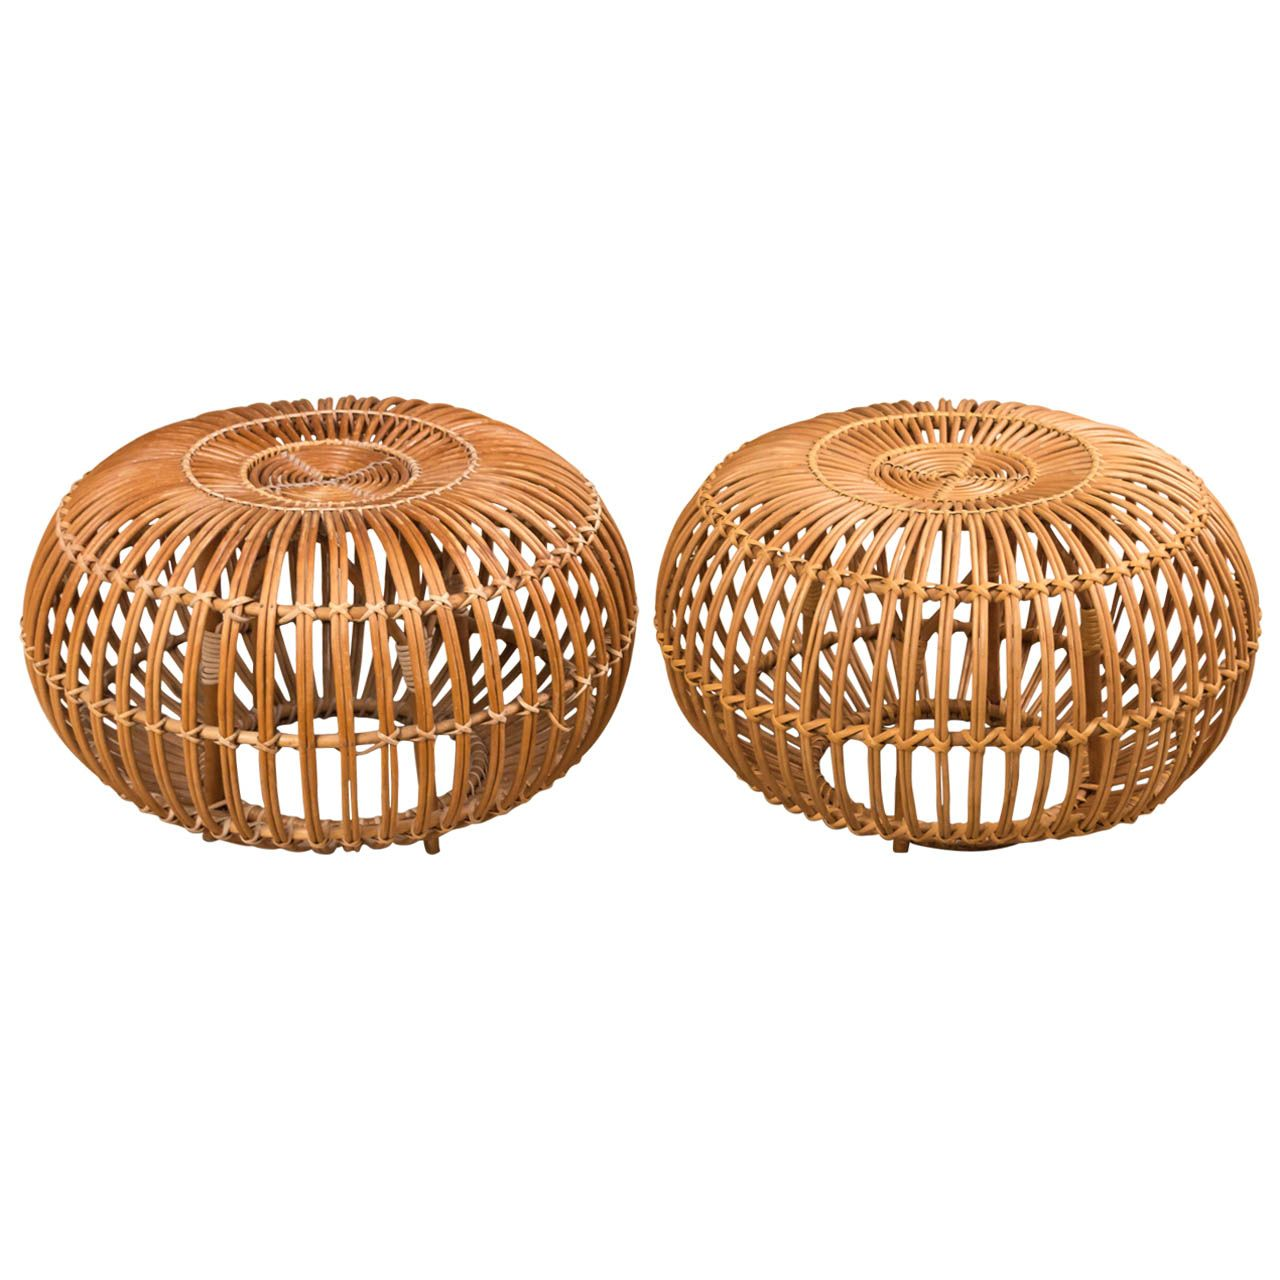 Franco Albini - Pair of Stool/Poufs | From a unique collection of antique and modern ottomans and poufs at https://www.1stdibs.com/furniture/seating/ottomans-poufs/